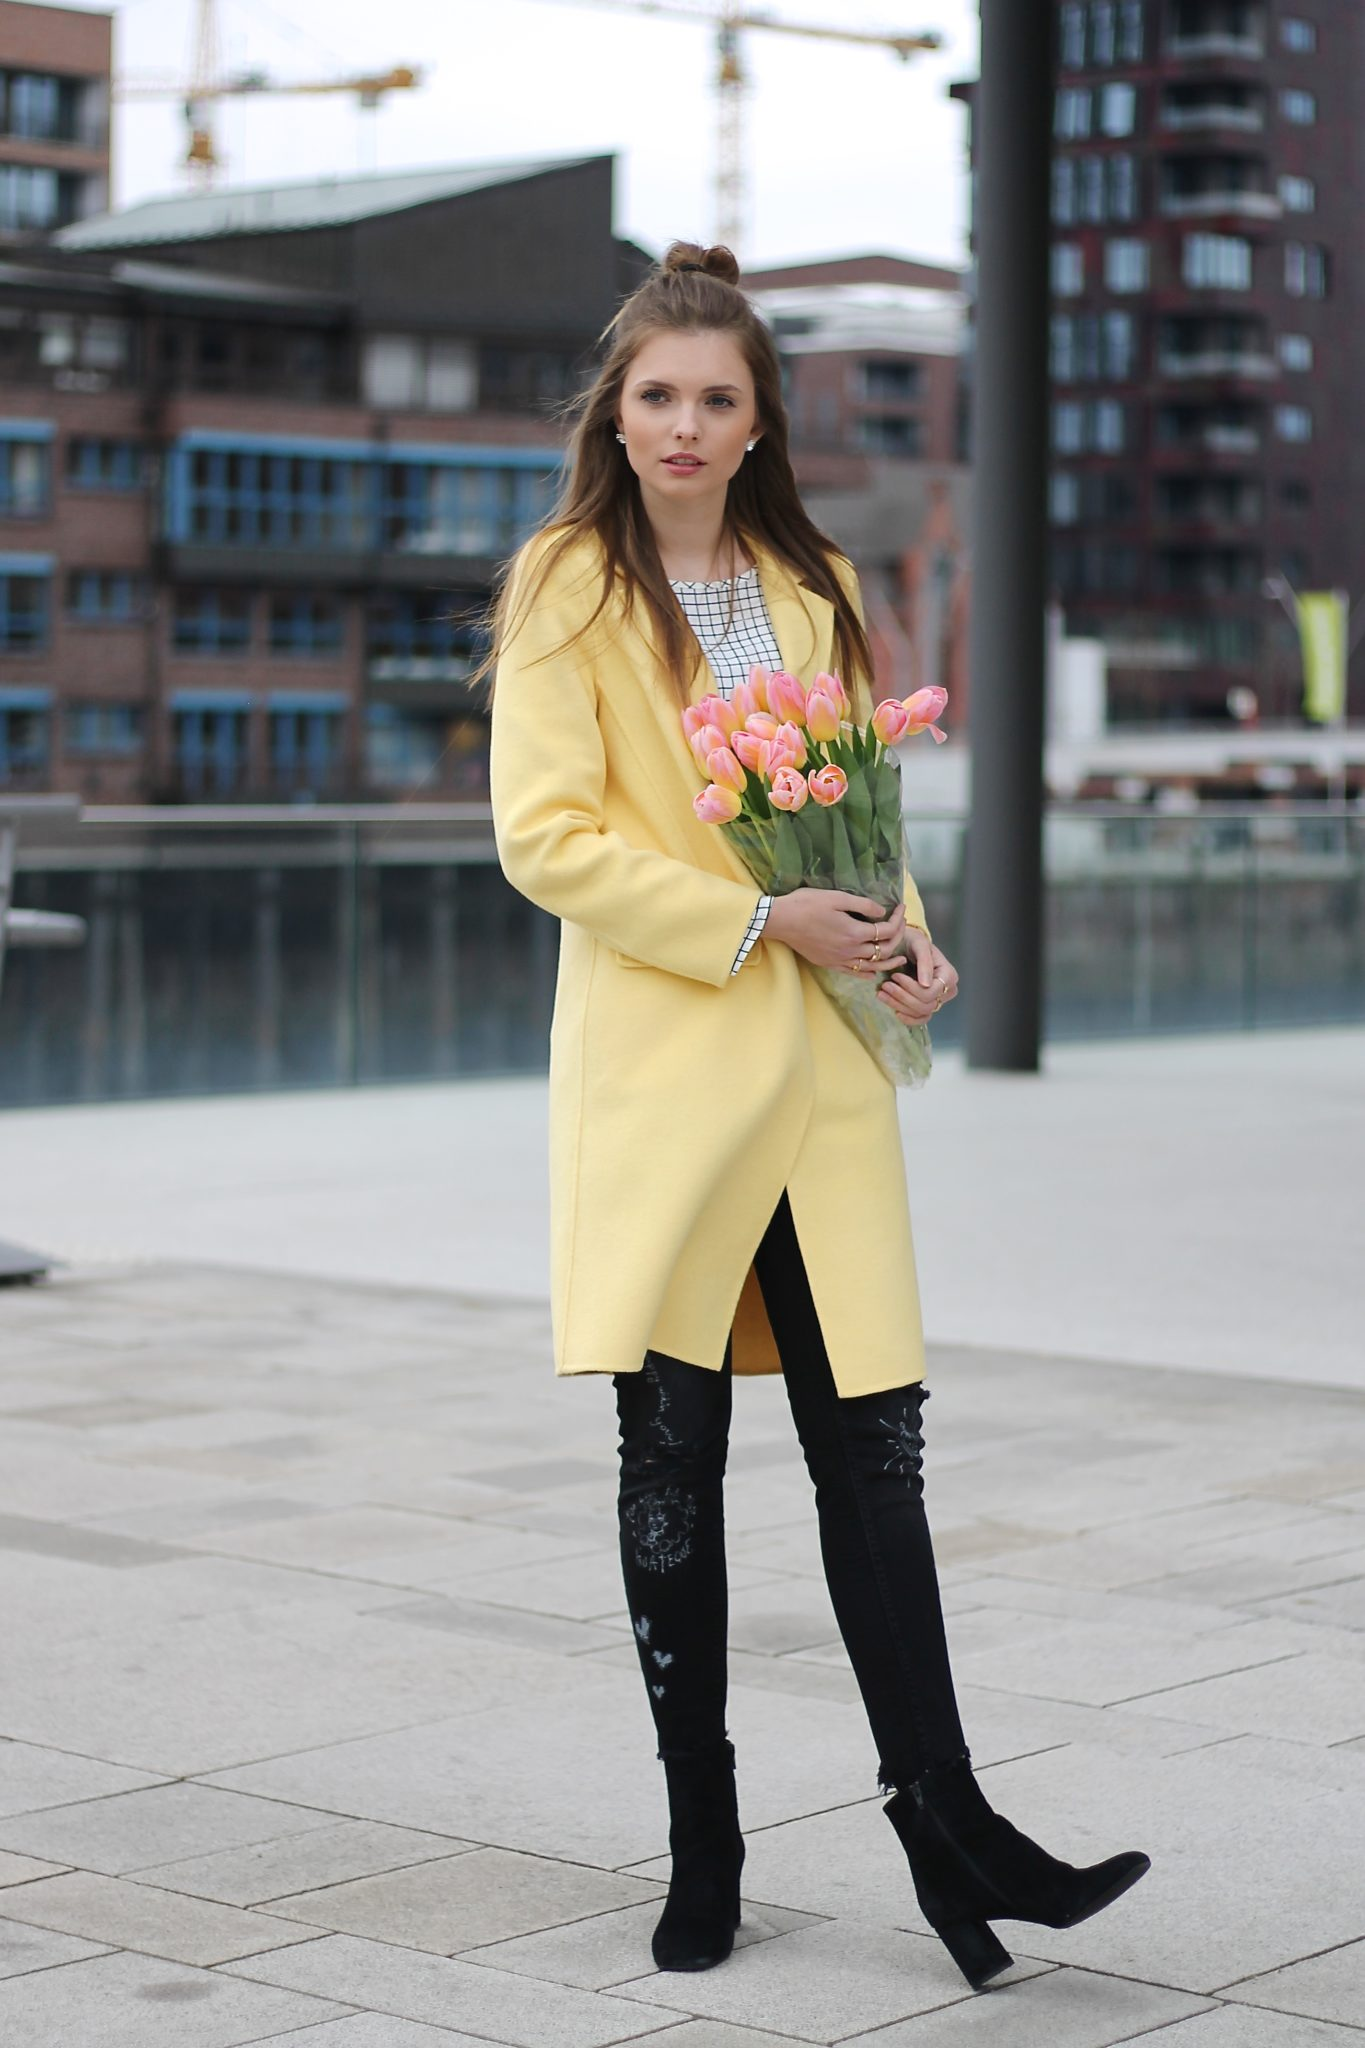 IMG 2504 - YELLOW COAT I SPRING